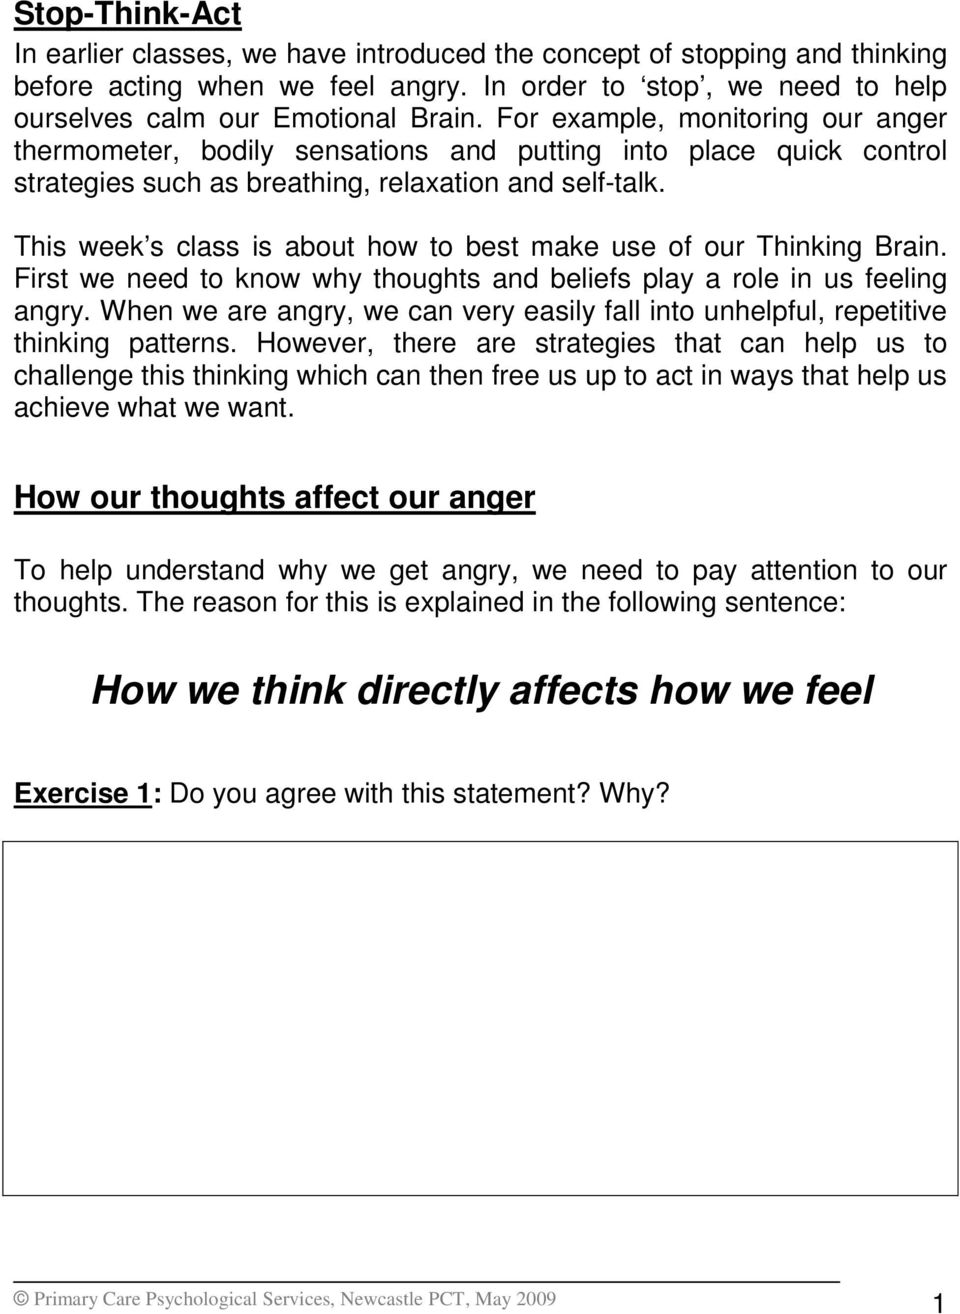 This week s class is about how to best make use of our Thinking Brain. First we need to know why thoughts and beliefs play a role in us feeling angry.